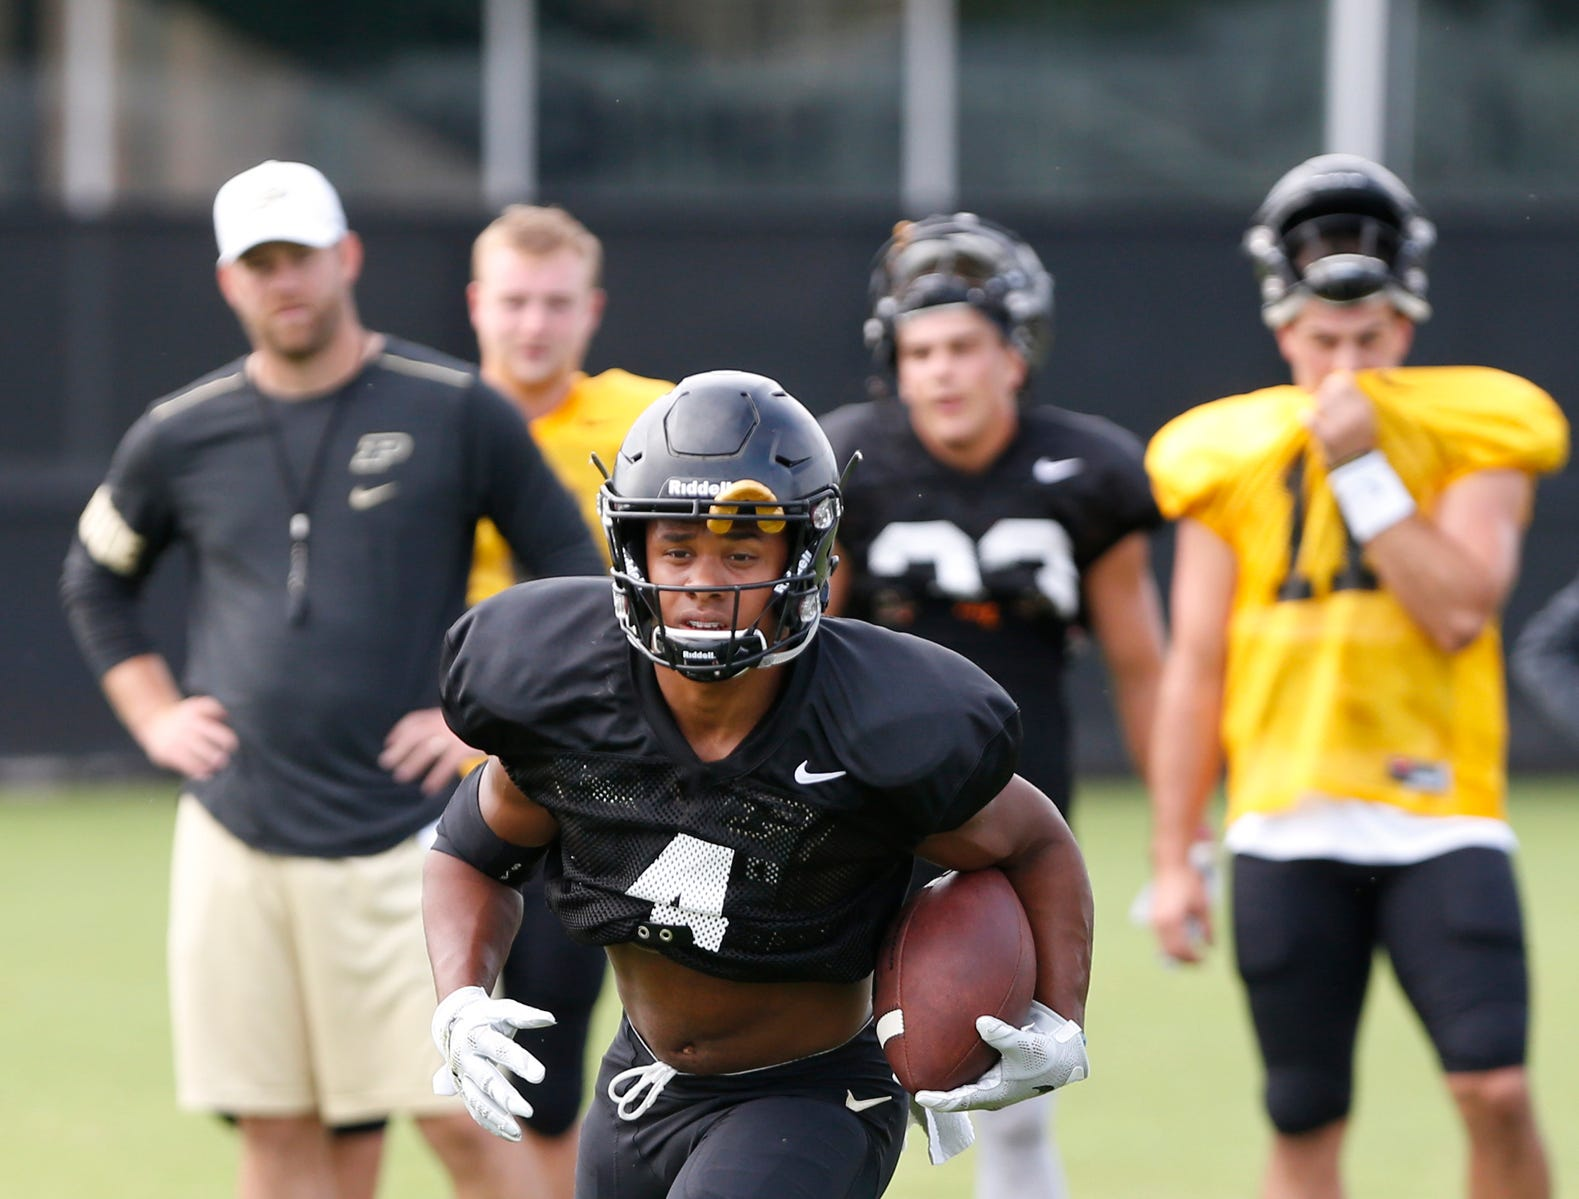 Wide receiver Rondale Moore runs after a pass reception during football practice Tuesday, August 7, 2018, at Purdue.